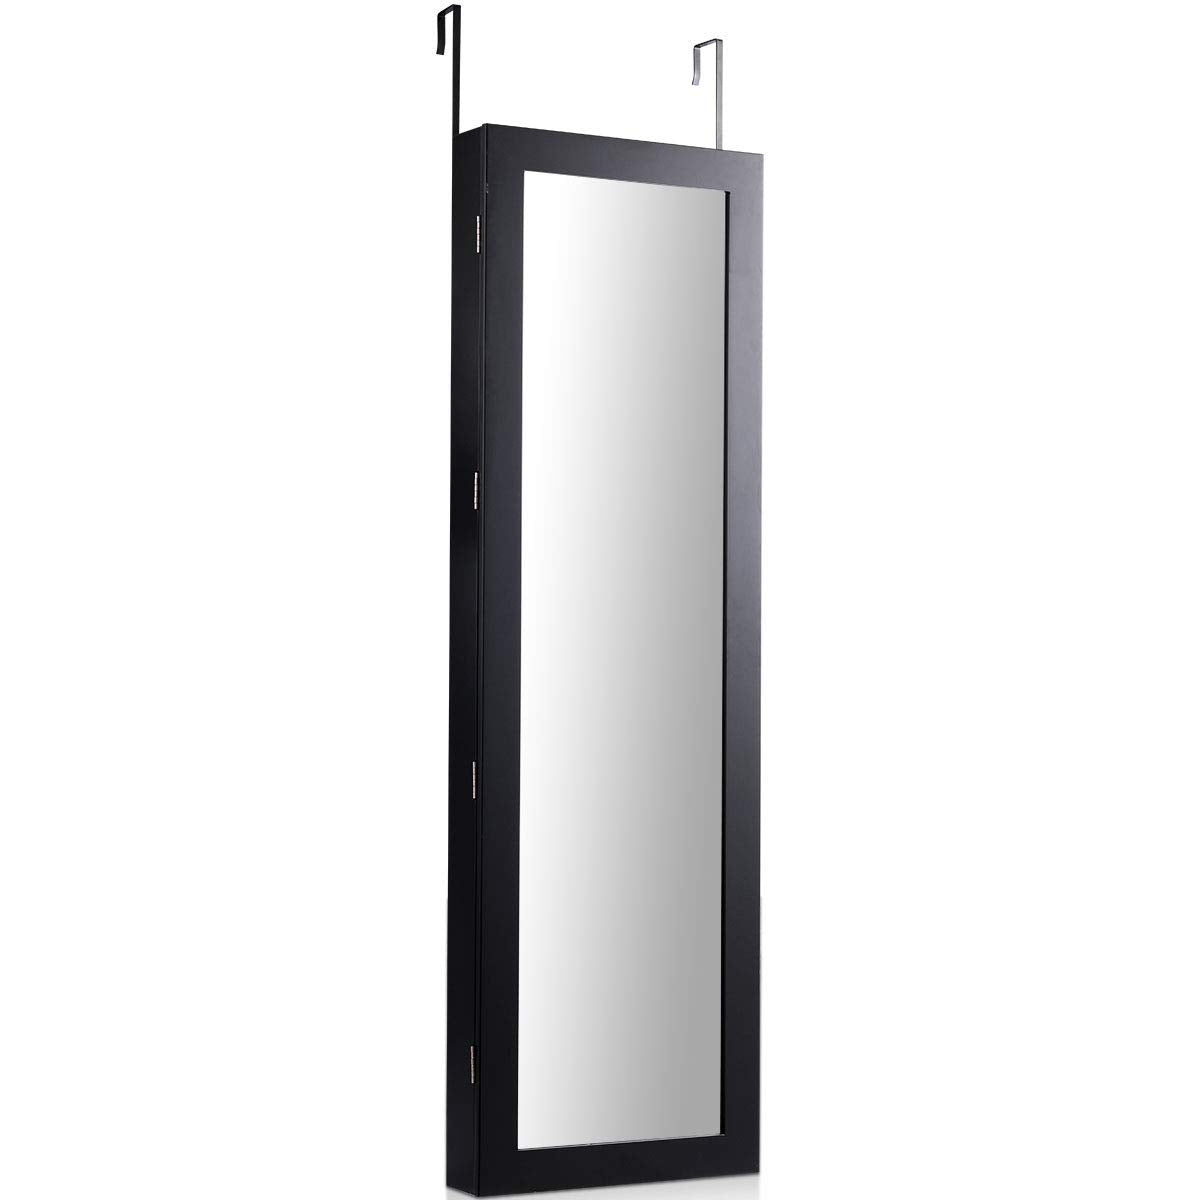 Lockable Wall Door Mounted Mirror Jewelry Cabinet w/LED Lights-Black